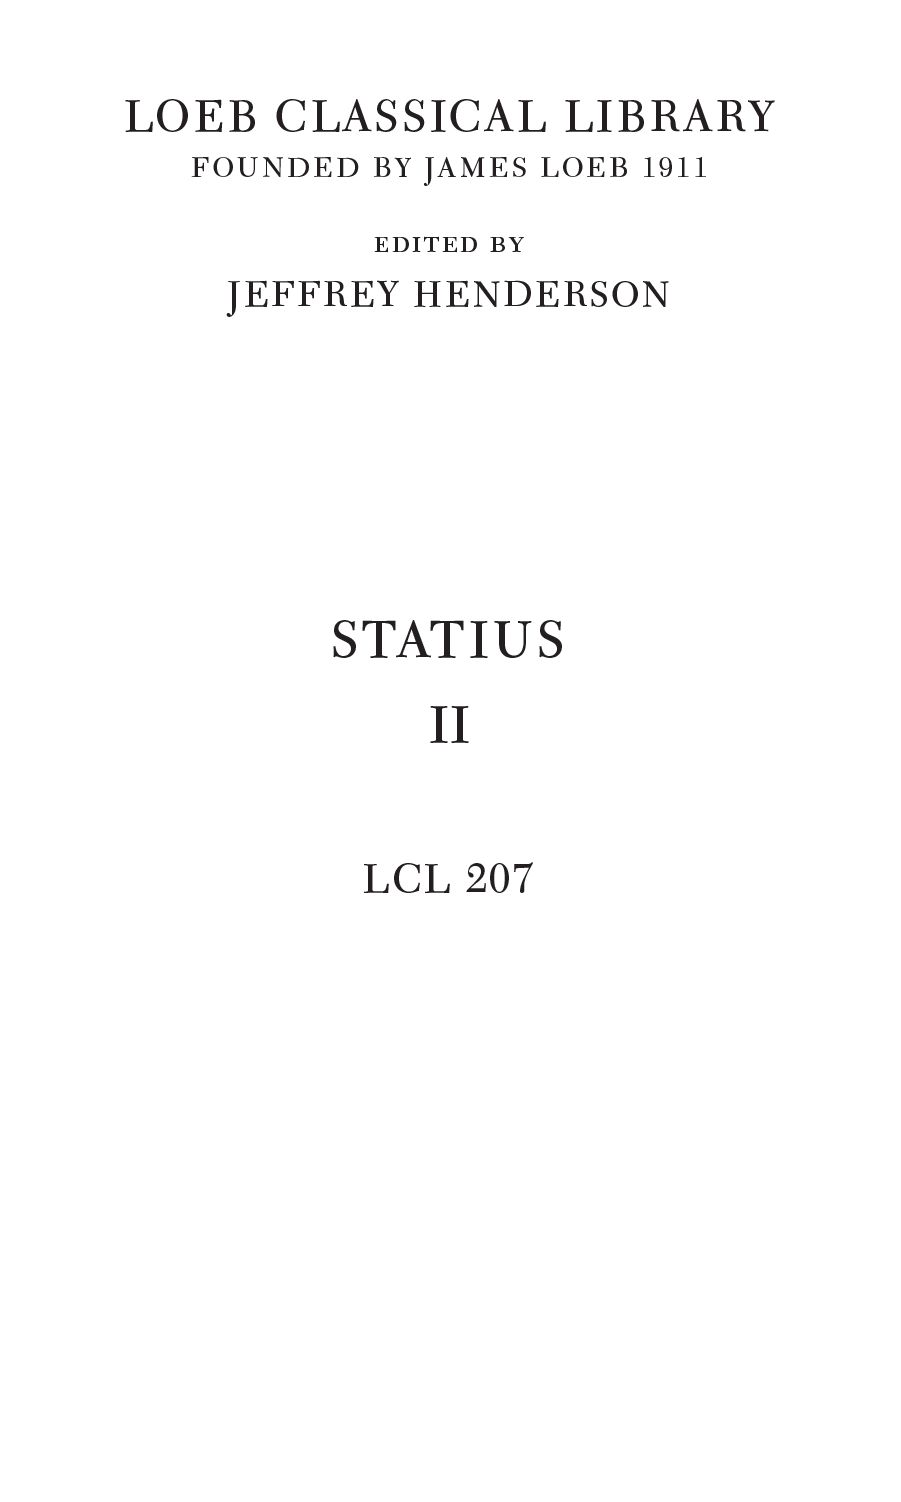 LOEB CLASSICAL LIBRARY FOUNDED BY JAMES LOEB 1911 edited by JEFFREY HENDERSON STATIUS II LCL 207